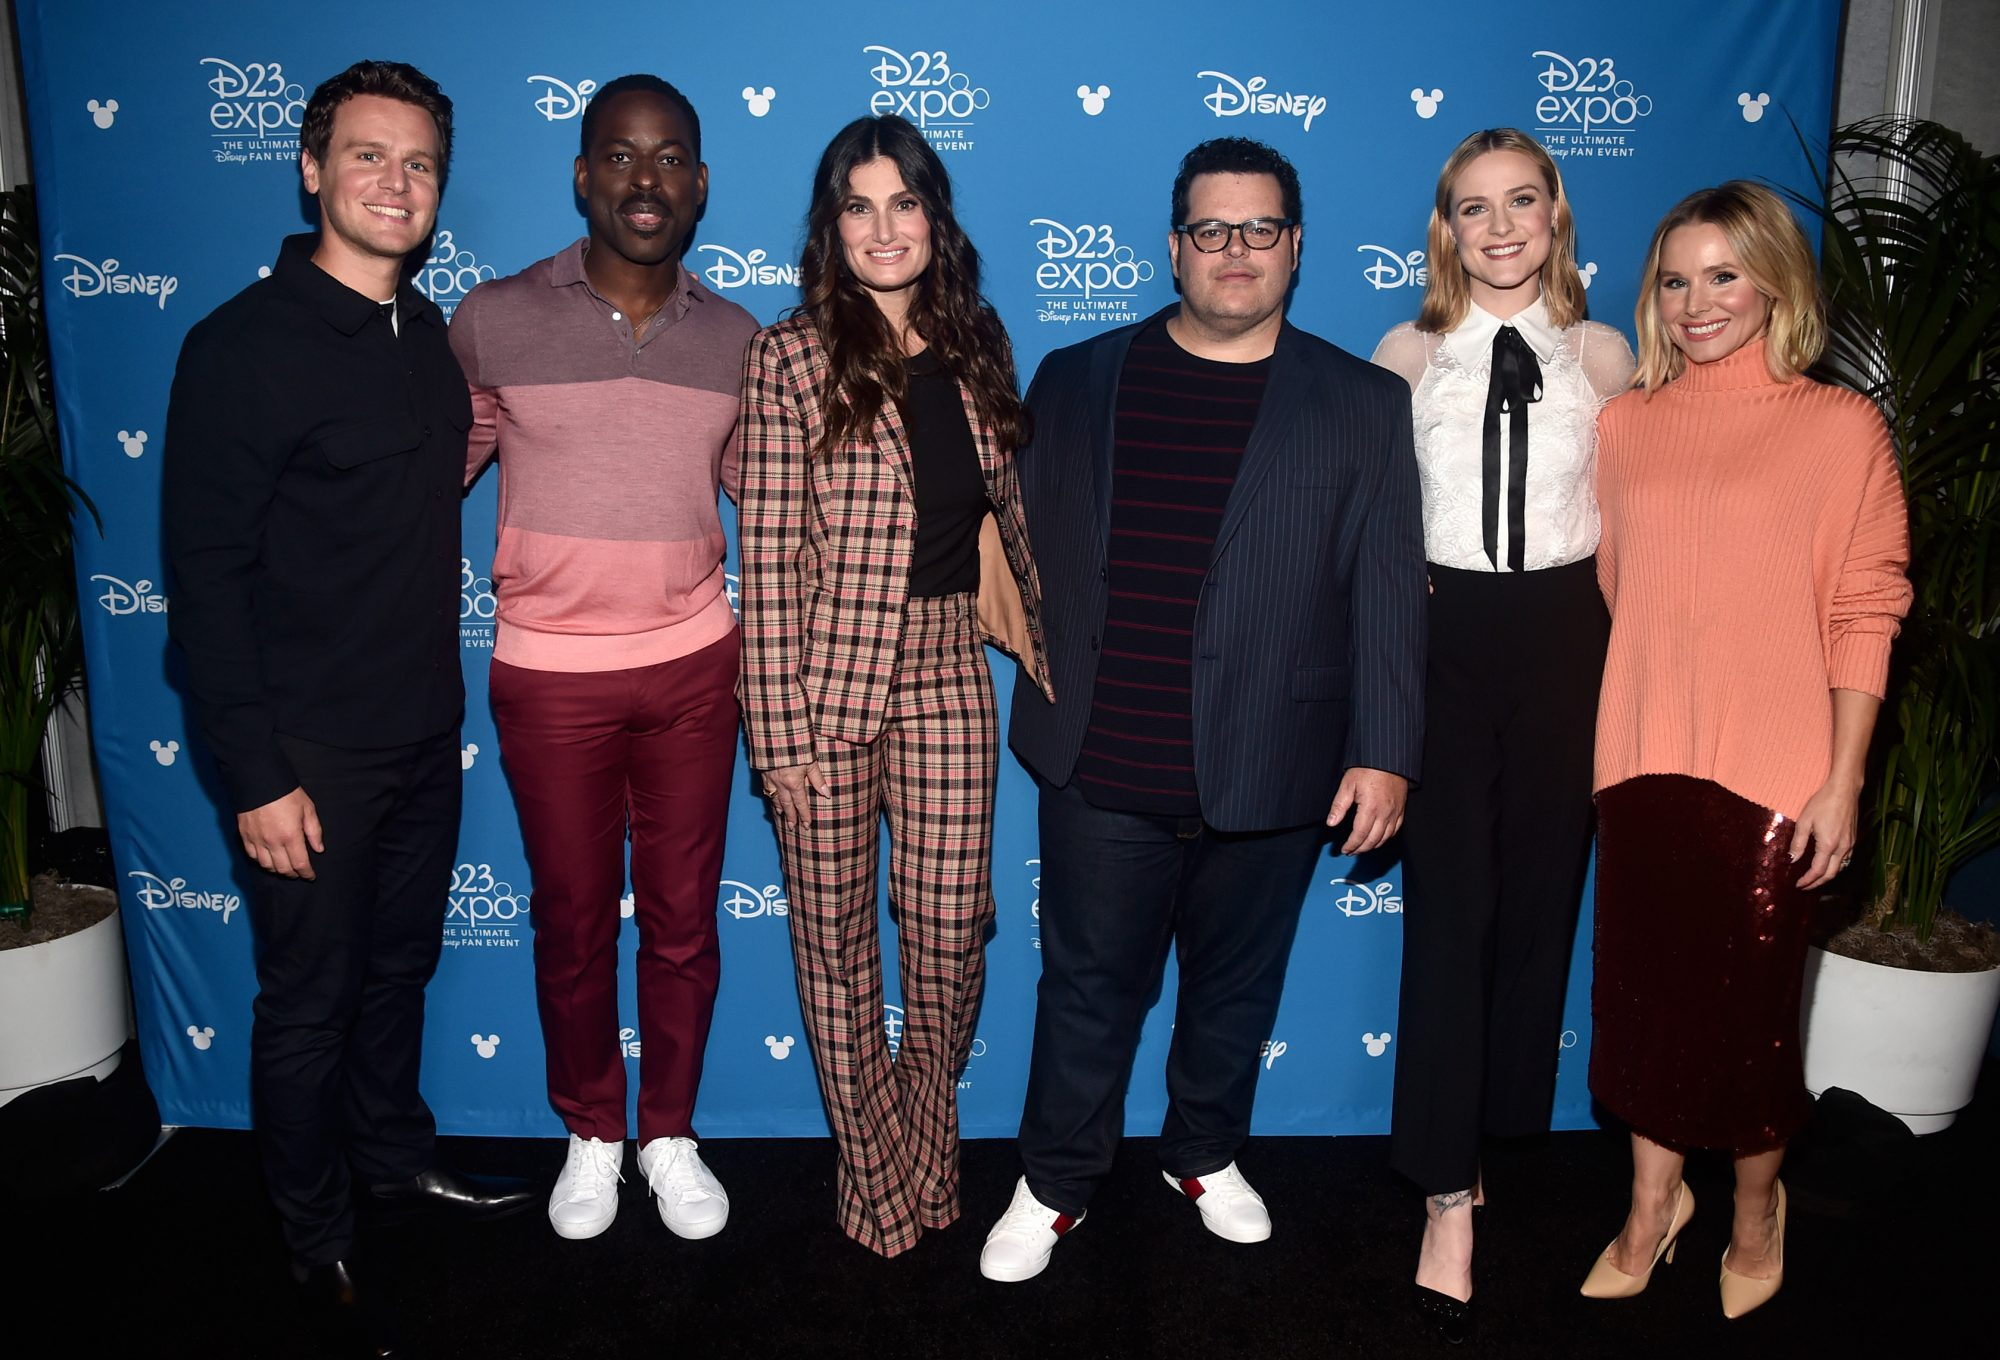 ANAHEIM, CALIFORNIA - AUGUST 24: (L-R) Jonathan Groff, Sterling K. Brown, Idina Menzel, Josh Gad, Evan Rachel Wood, and Kristen Bell of 'Frozen 2' took part today in the Walt Disney Studios presentation at Disney's D23 EXPO 2019 in Anaheim, Calif.  'Frozen 2' will be released in U.S. theaters on November 22, 2019. (Photo by Alberto E. Rodriguez/Getty Images for Disney)